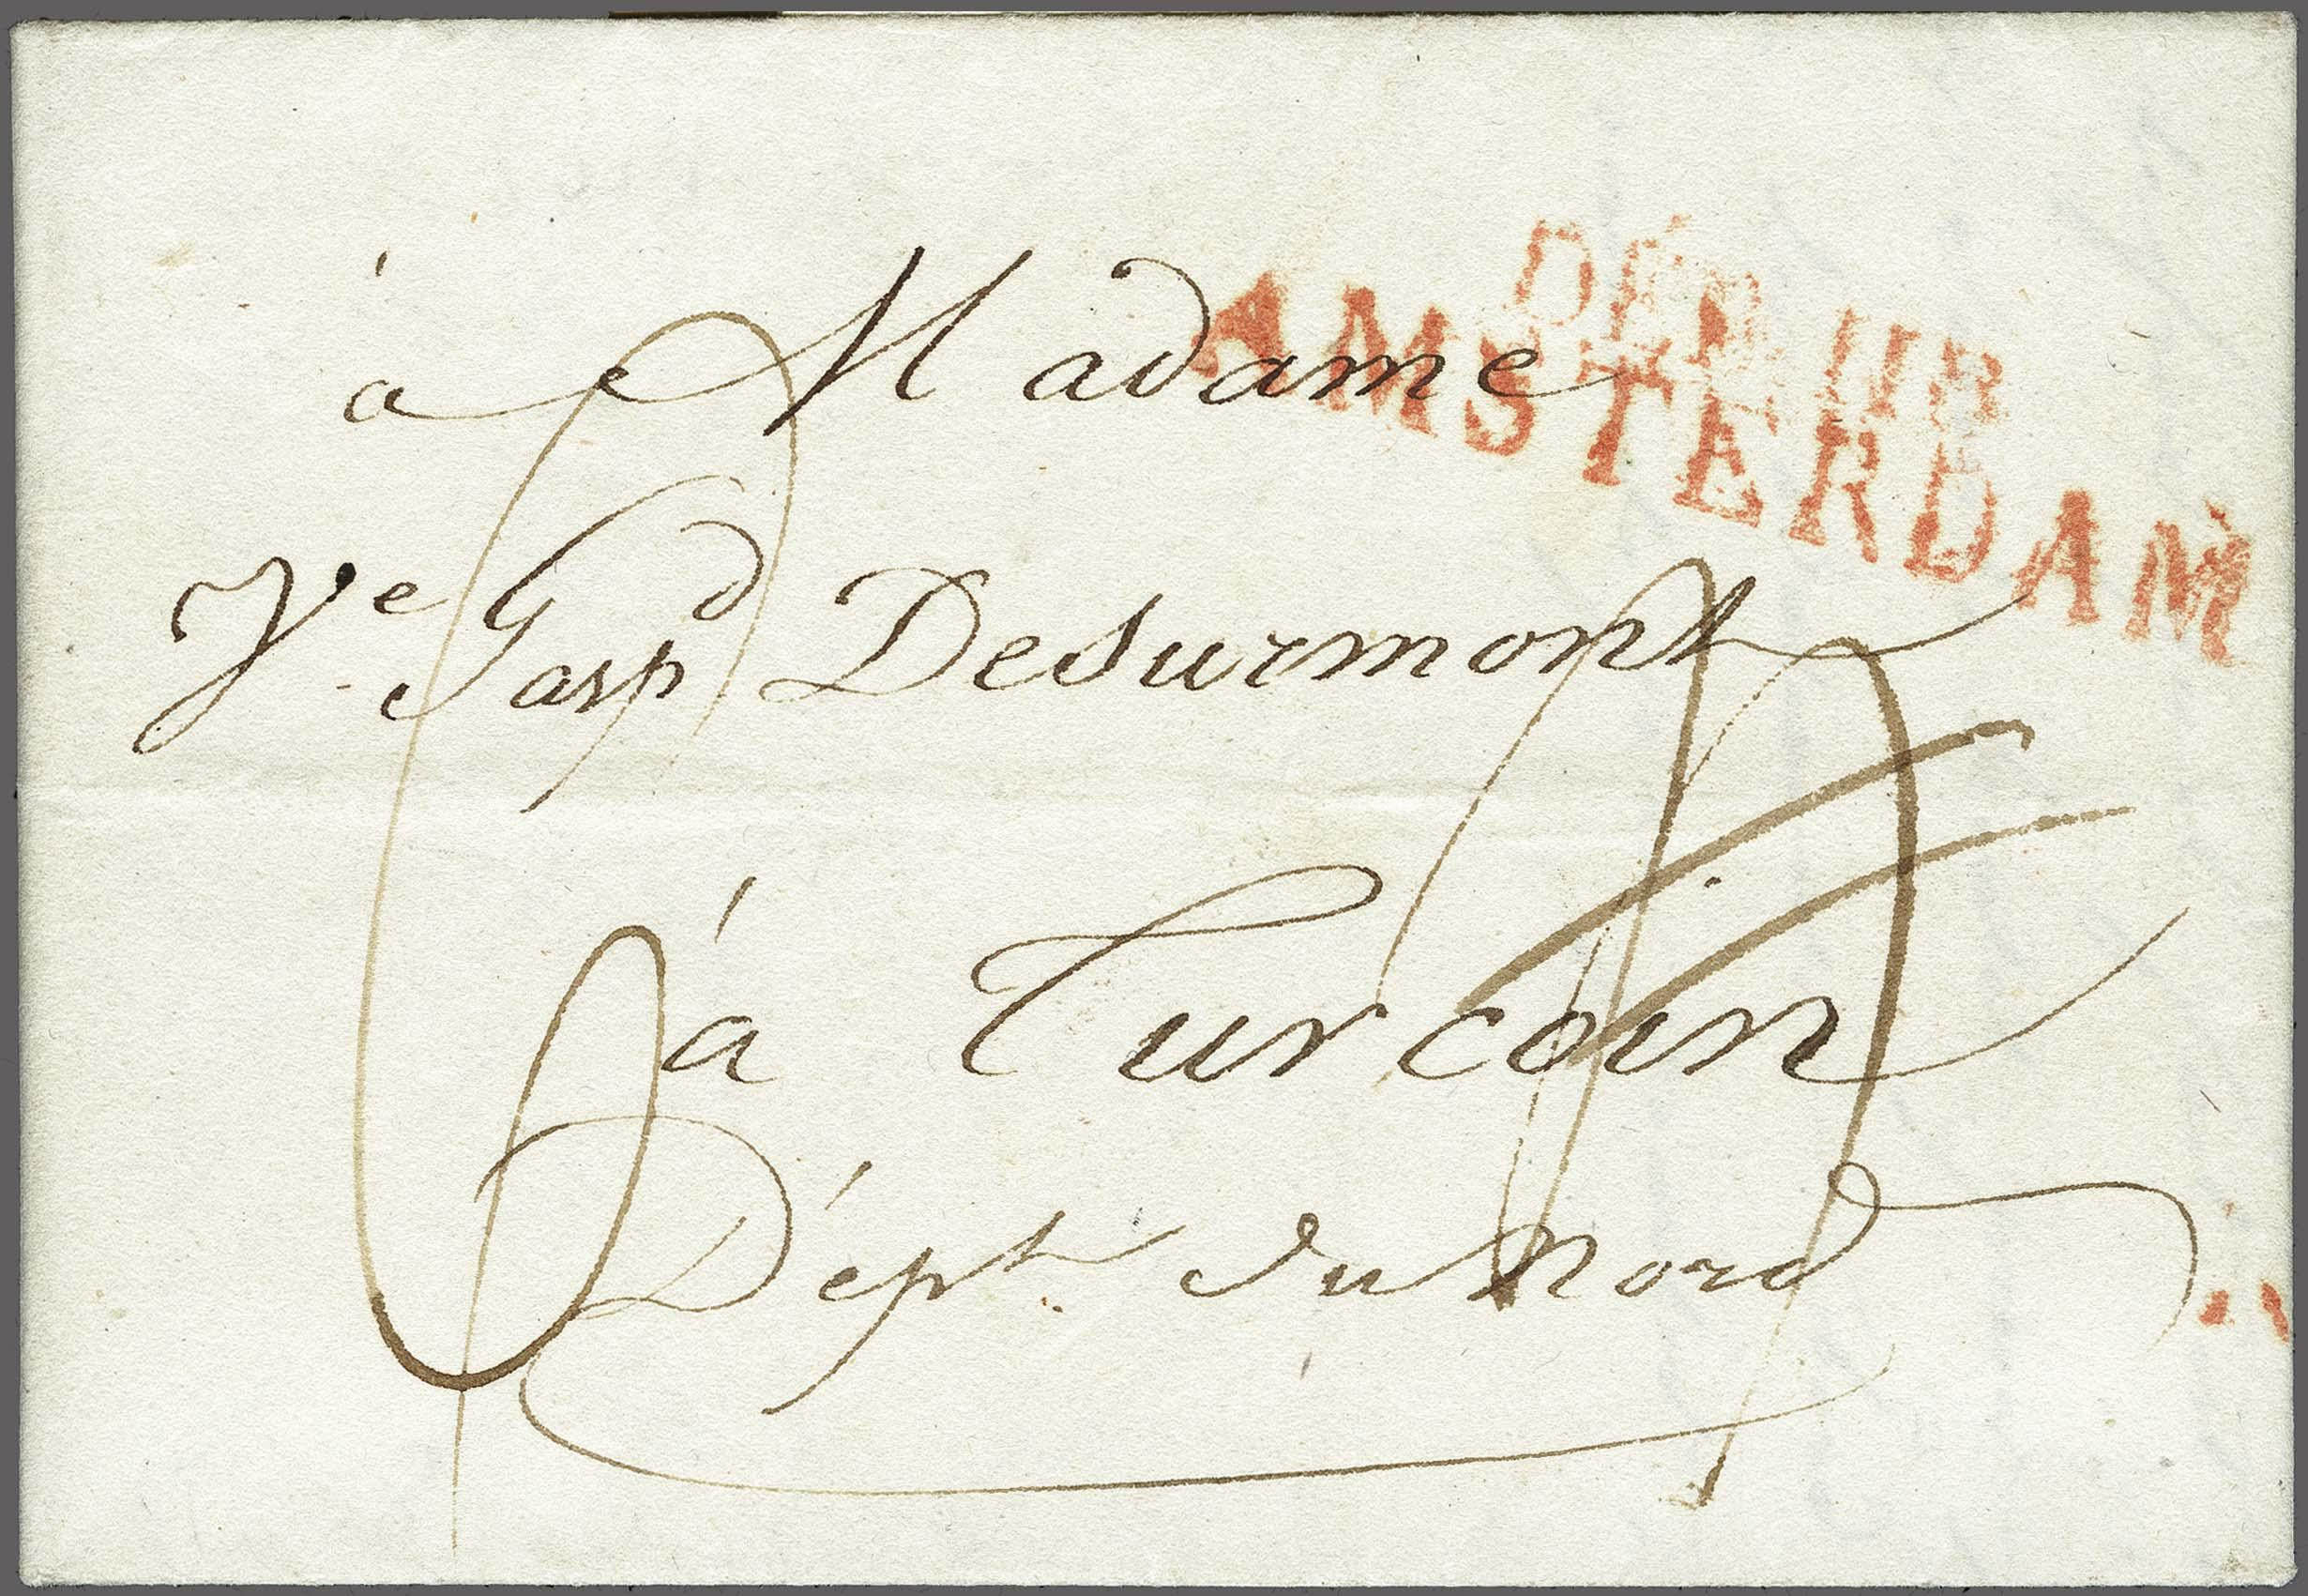 Lot 2380 - Netherlands and former colonies Netherlands -  Corinphila Veilingen Auction 250-253 - Day 3 - Netherlands and former colonies - Single lots & Picture postcards